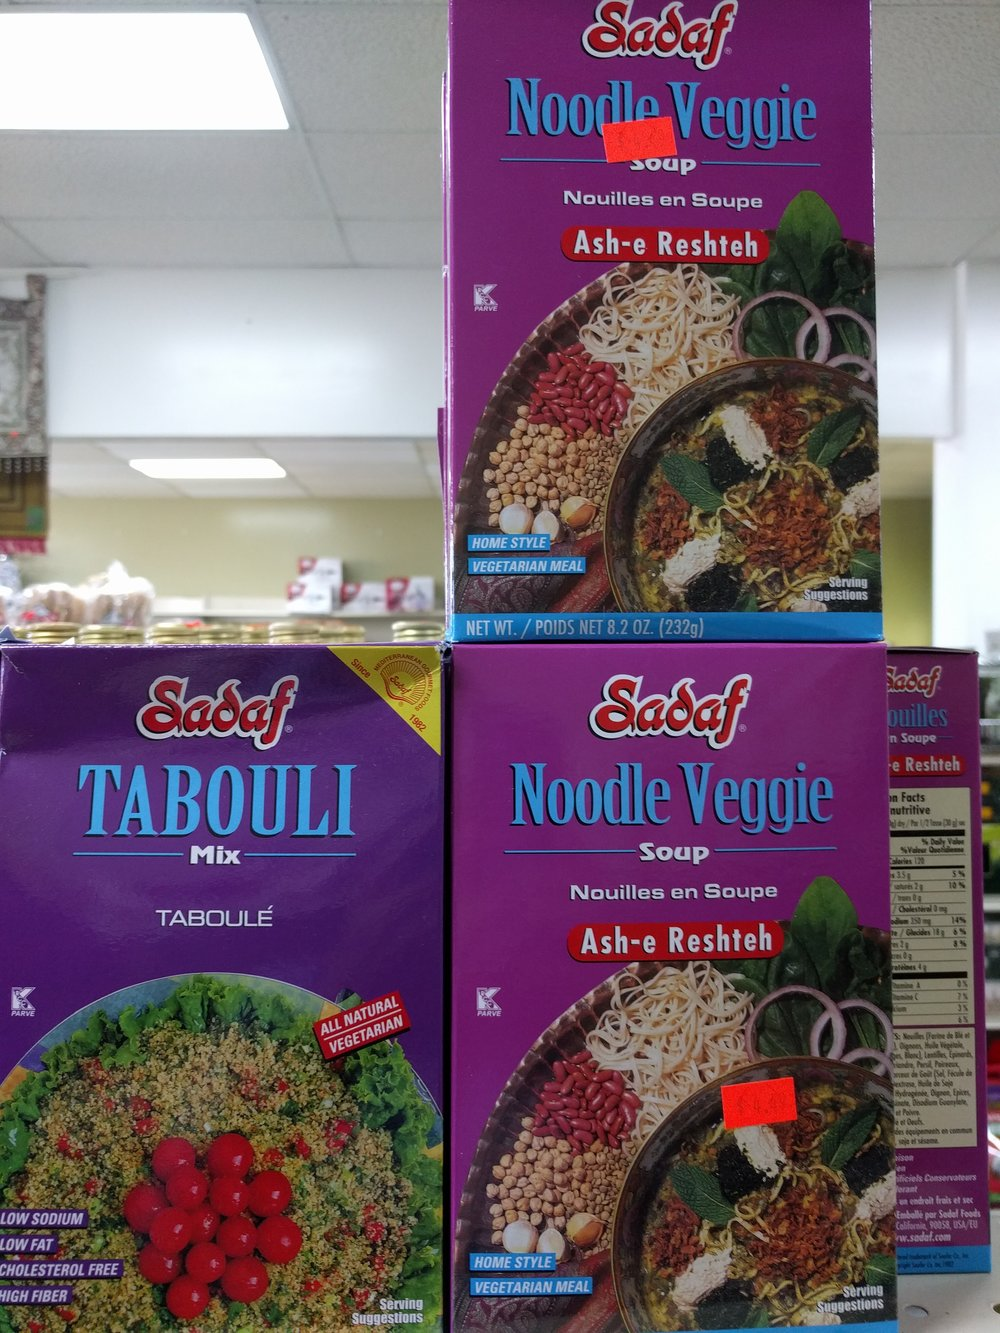 Sadaf-Tabouli-Pak-Halal-International-Foods-12259-W-87th-St-Pkwy-Lenexa-KS-66215.jpg